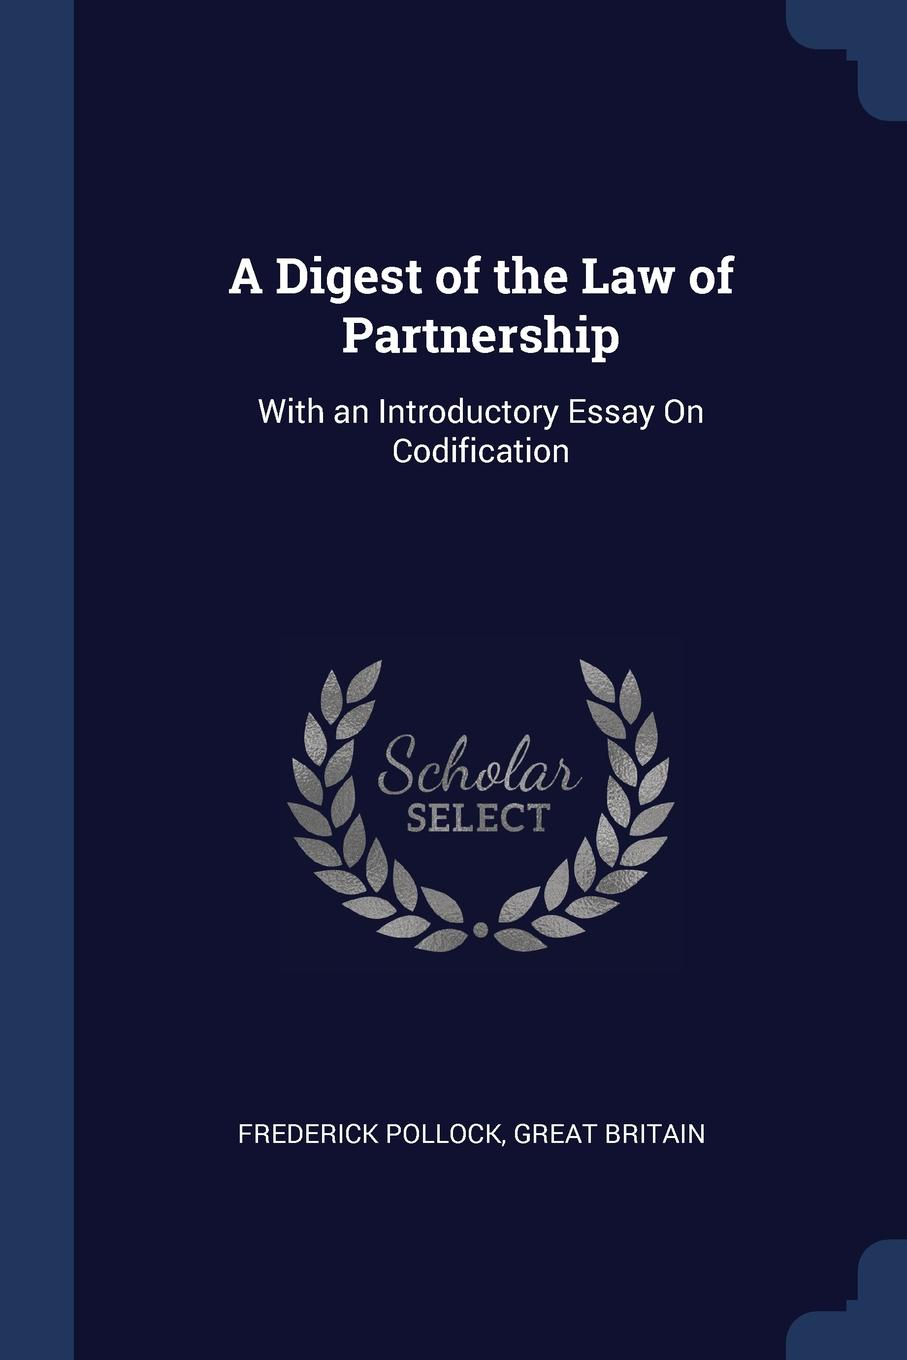 Frederick Pollock, Great Britain A Digest of the Law Partnership. With an Introductory Essay On Codification